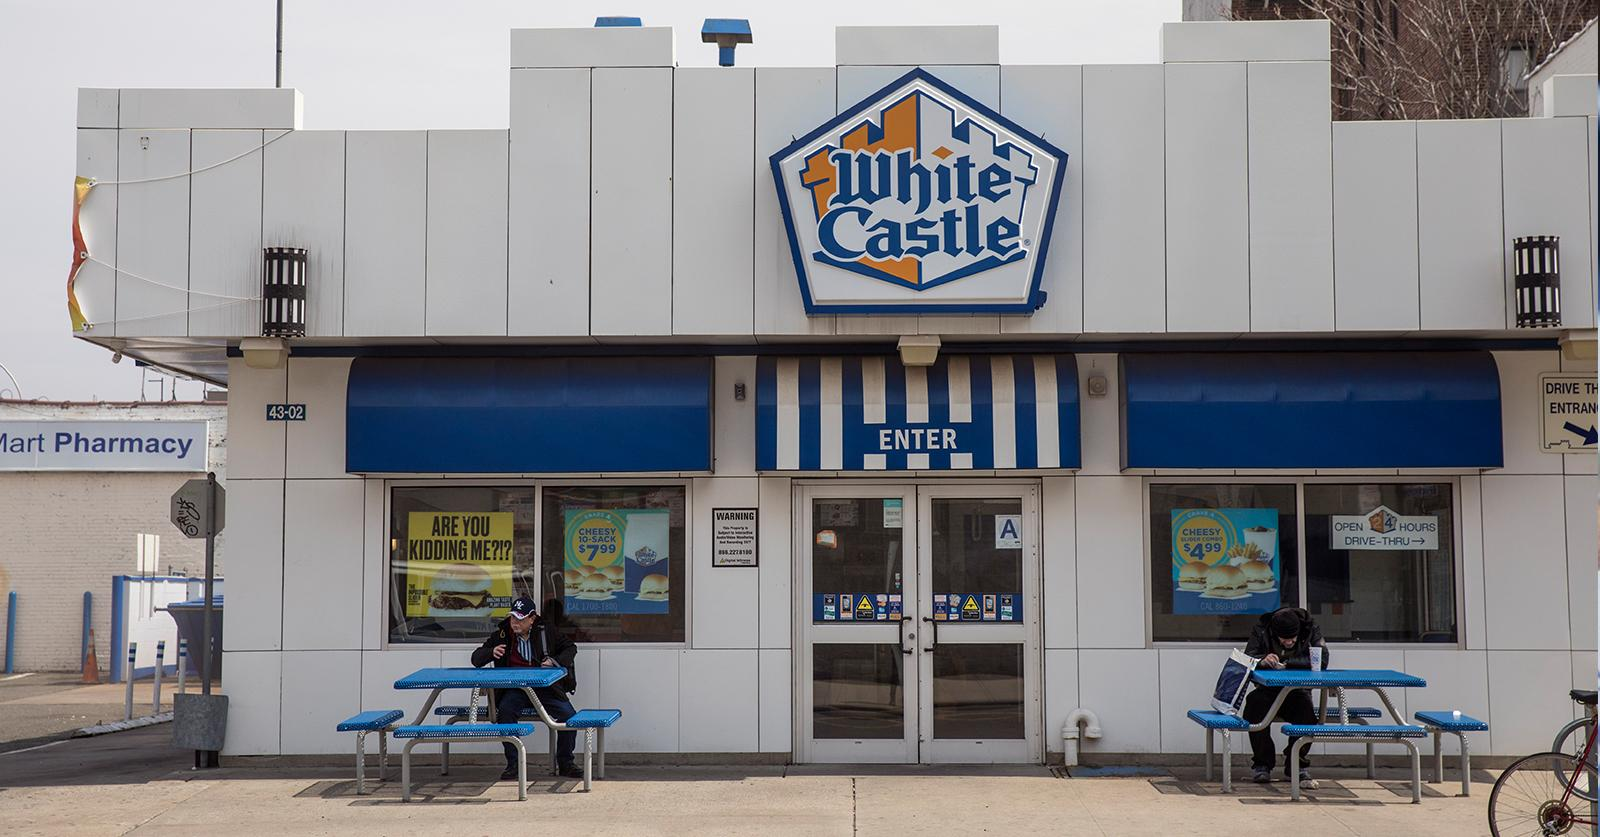 whitecastle-1537206656778-1537206659115.jpg